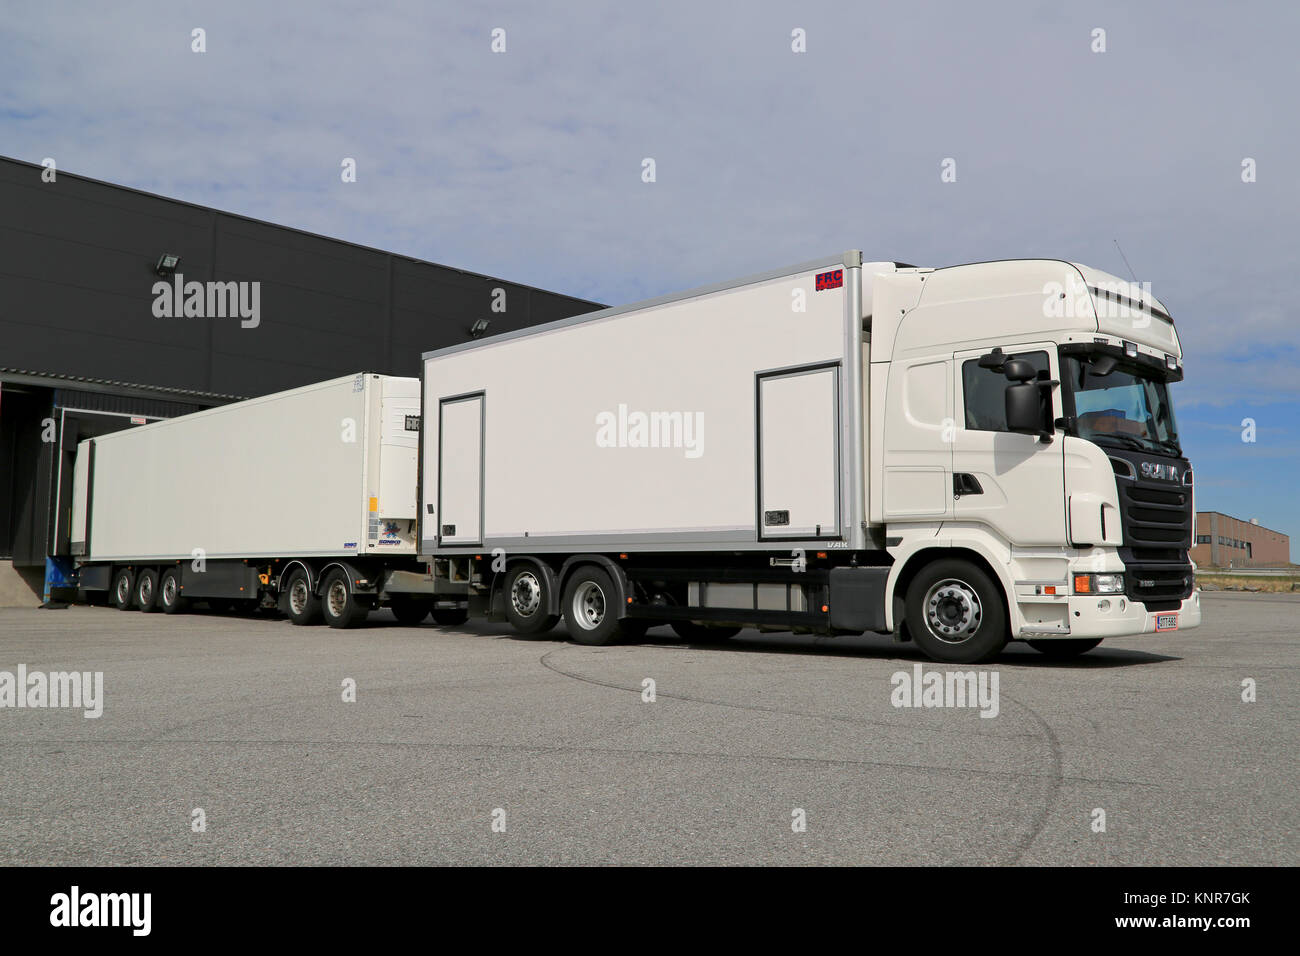 Unload Lorry Stock Photos Amp Unload Lorry Stock Images Alamy